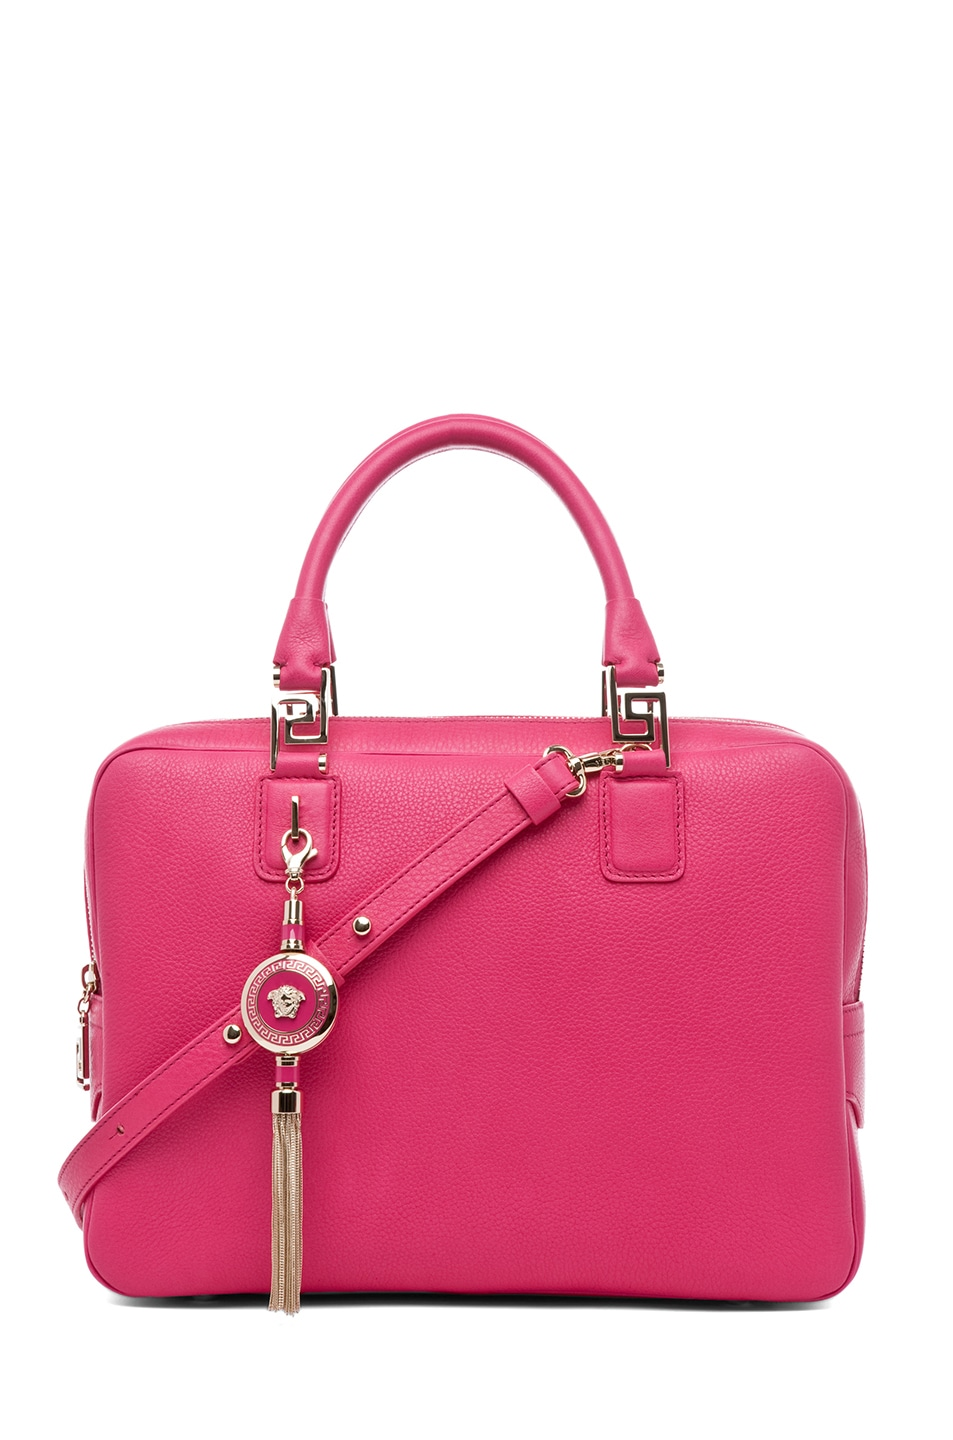 Image 1 of VERSACE Handbag in Pink